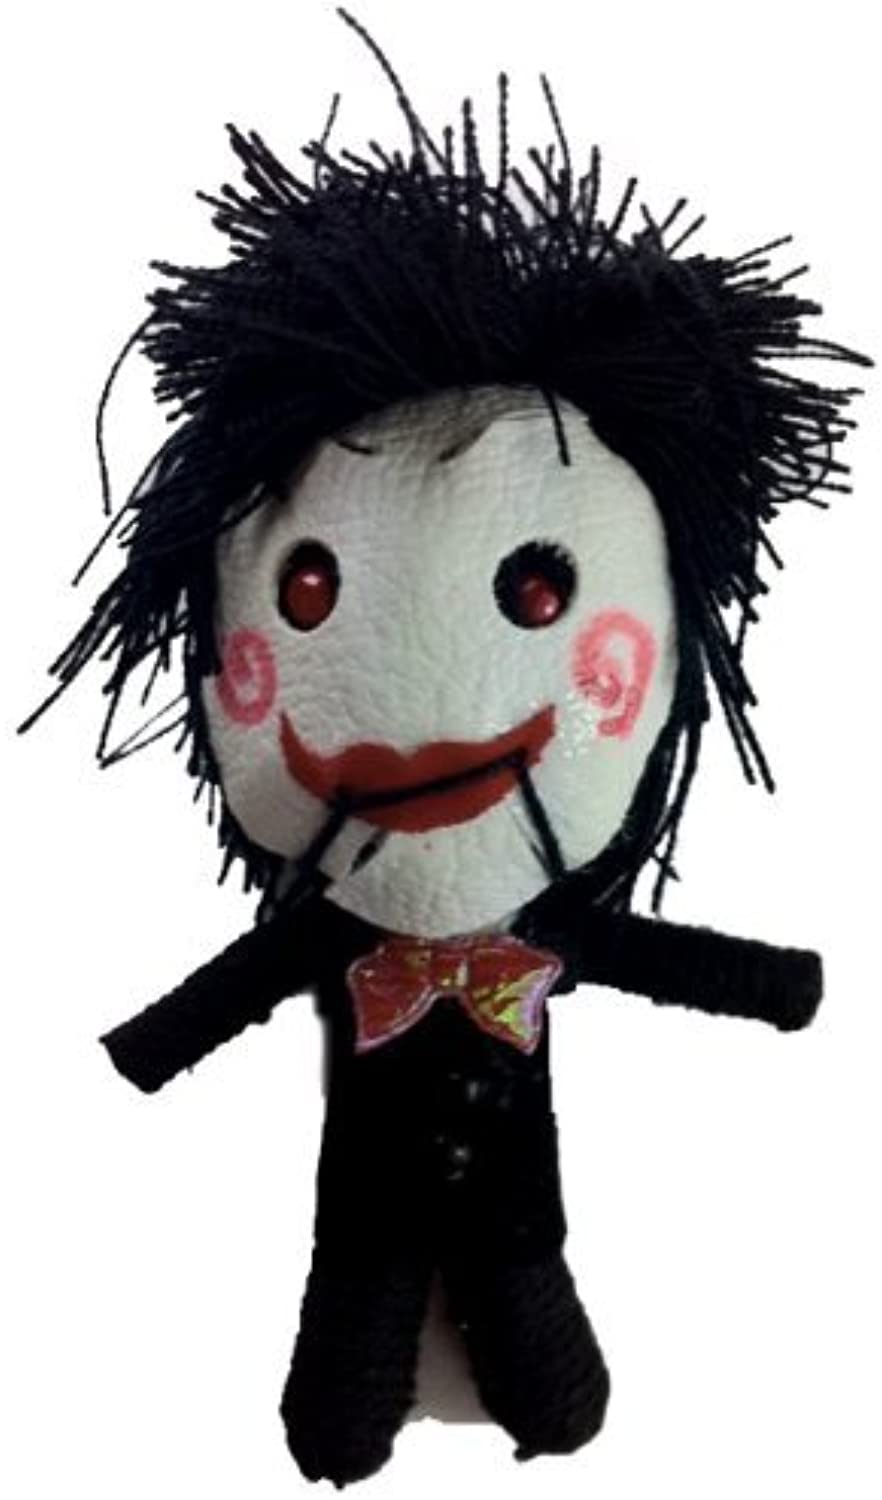 Billy Saw Puppet Voodoo String Doll Keychain